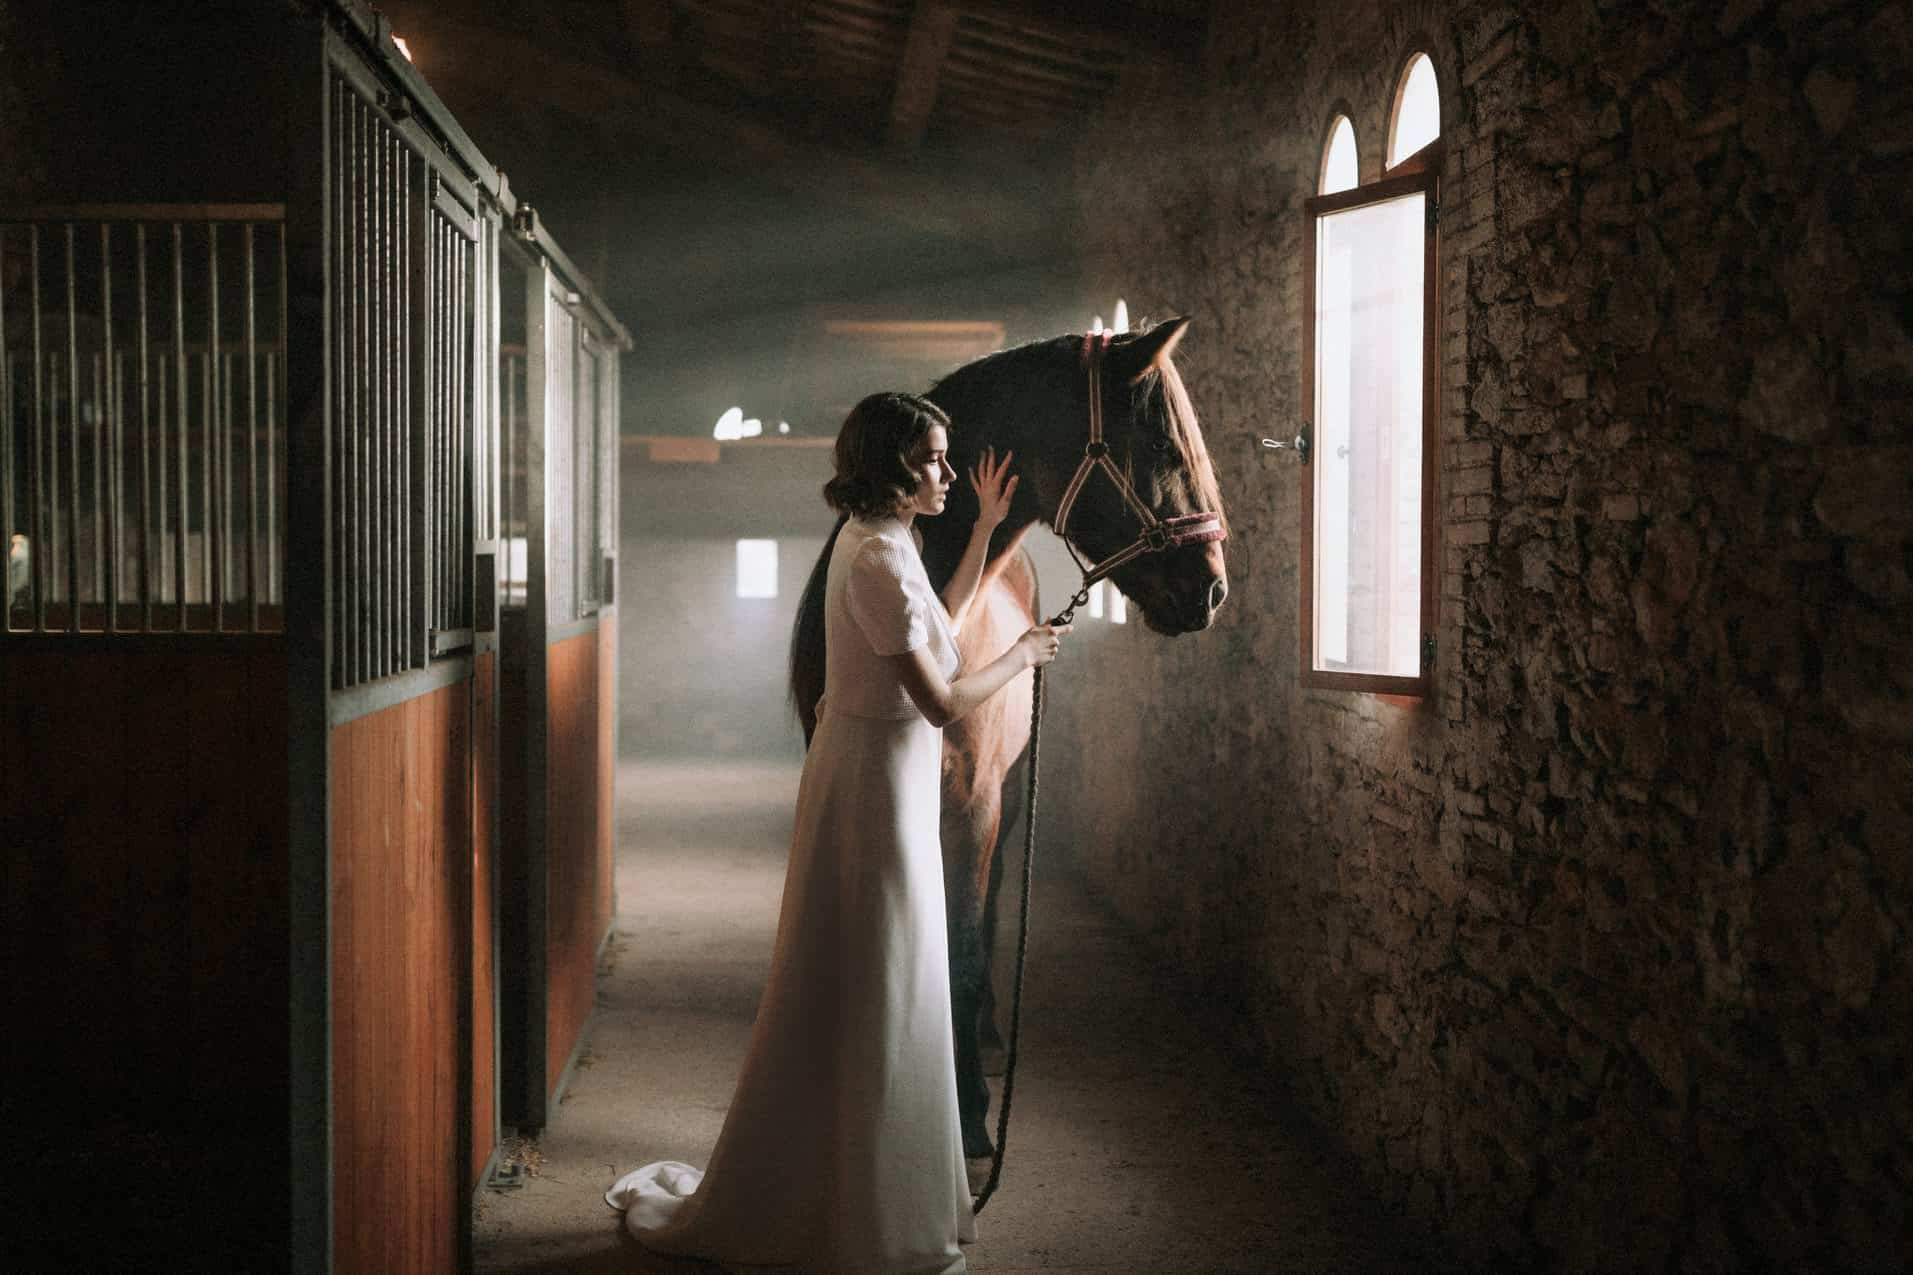 Beautiful Image of a Bride next to a horse